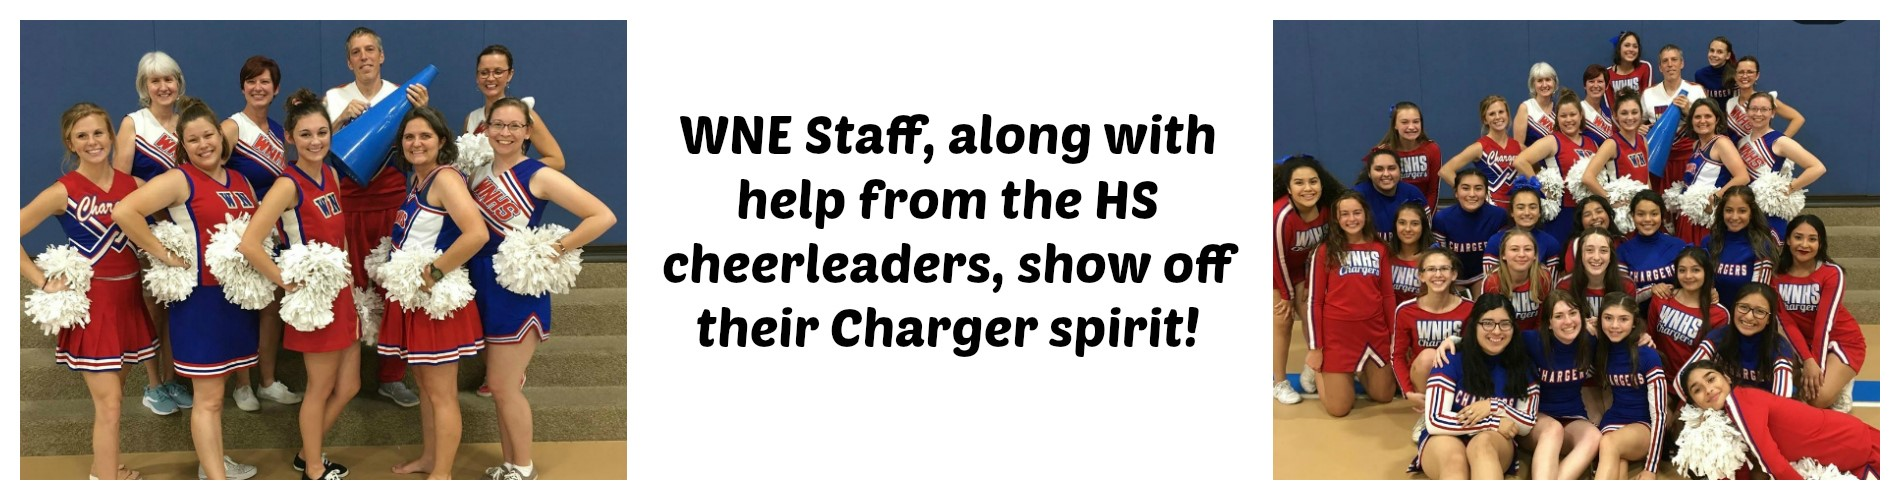 WNE staff cheer on the Chargers.